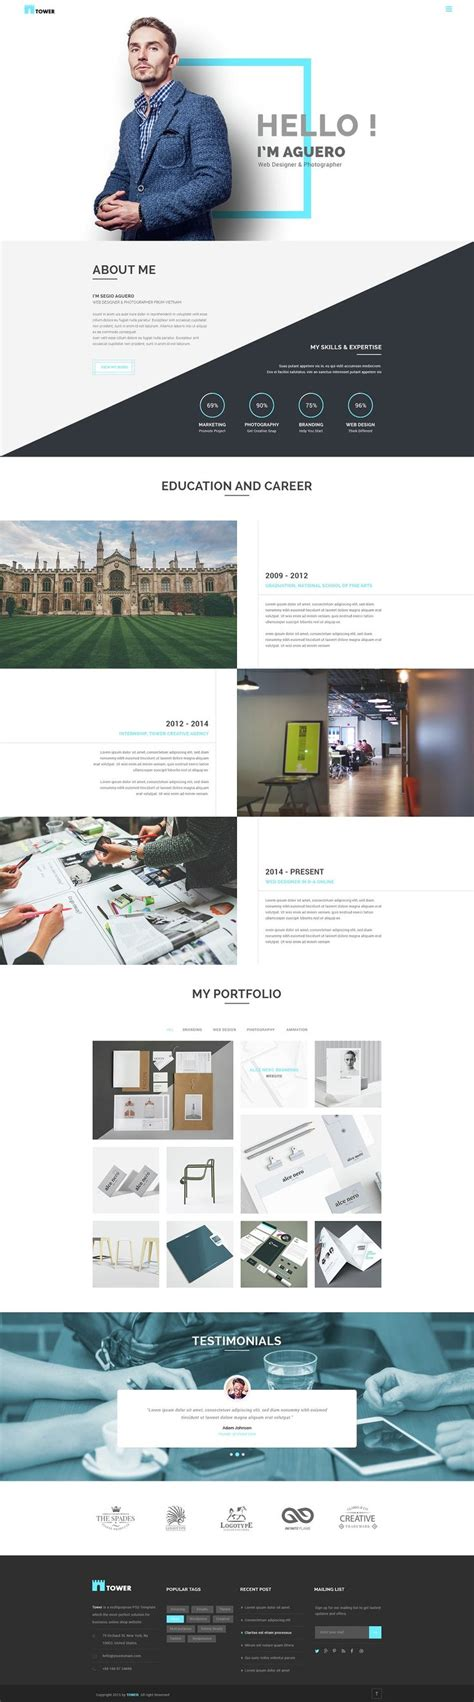 design inspiration wordpress whether or not you use themes in wordpress these are